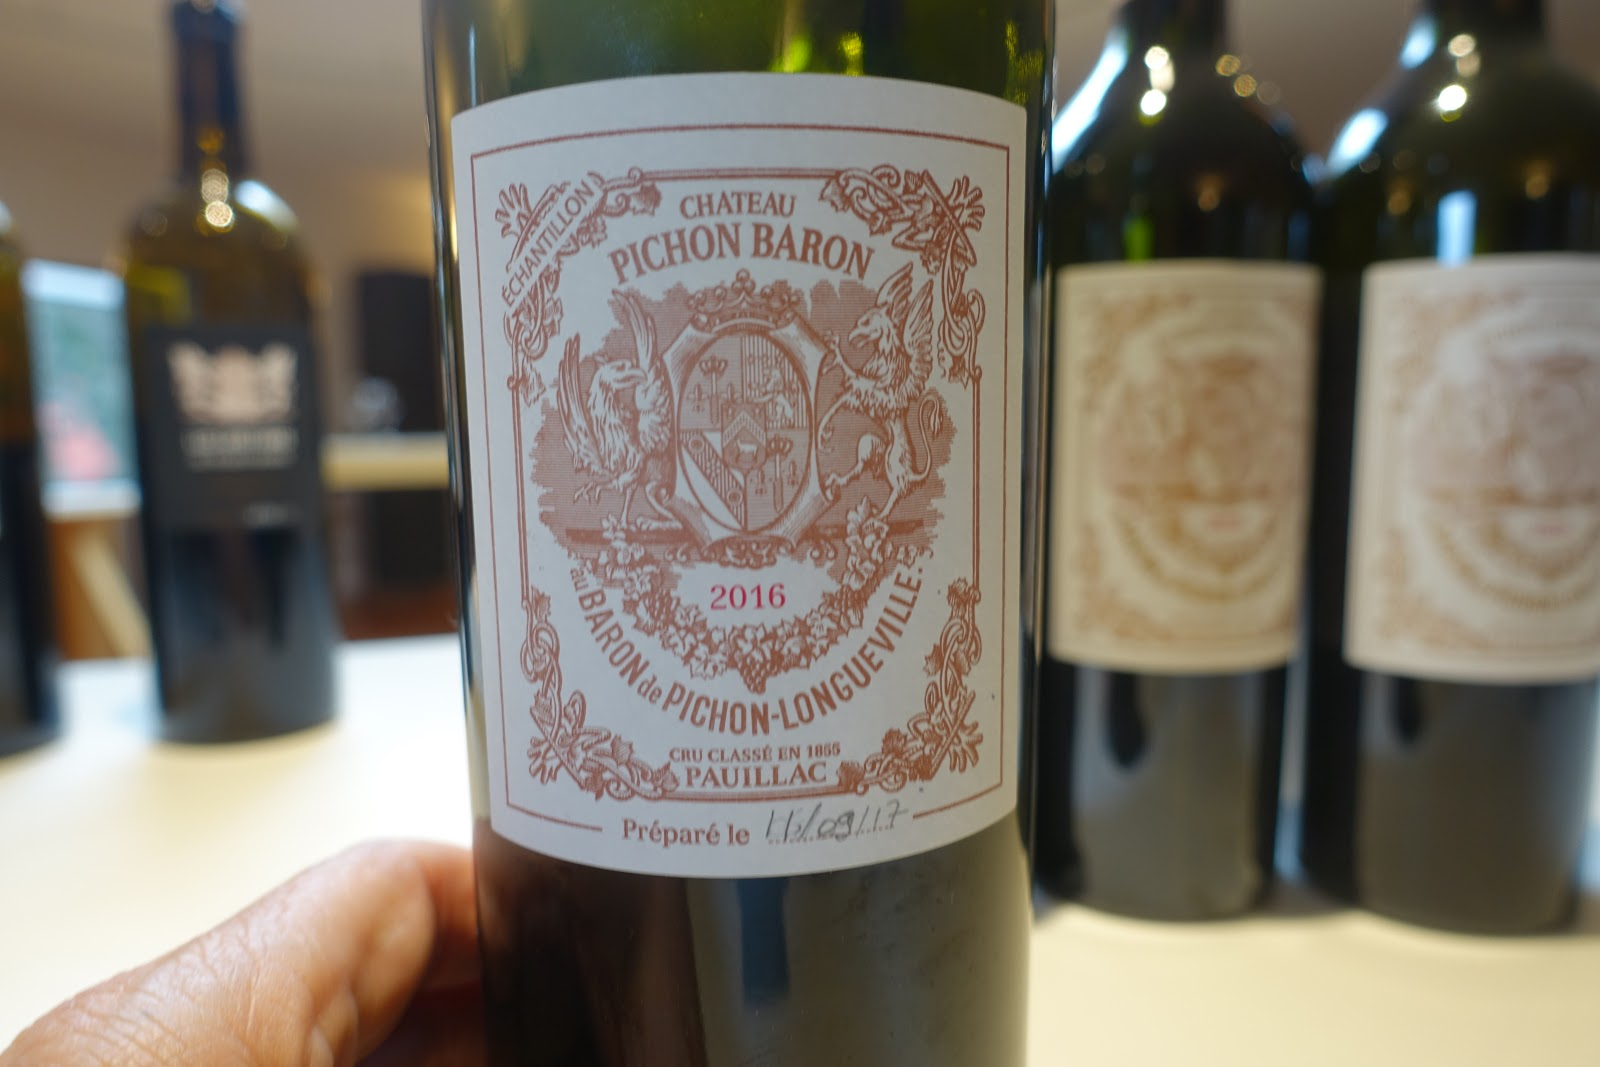 schiller-wine: Tour and Tasting at Château Pichon